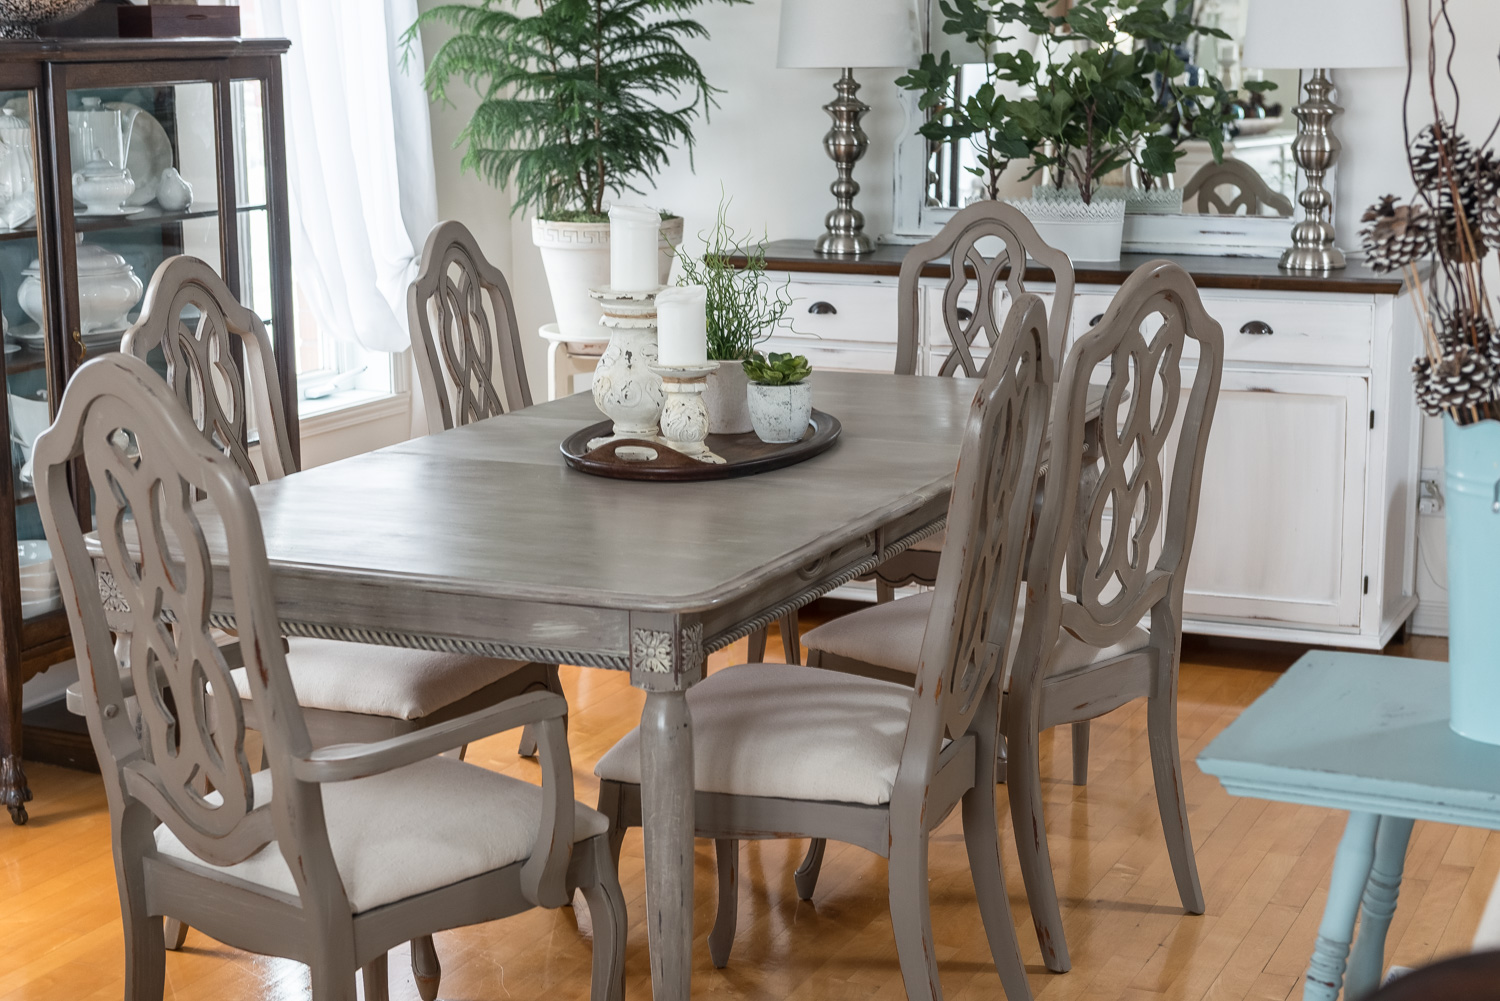 Dining Set Makeover - by Orphans with Makeup